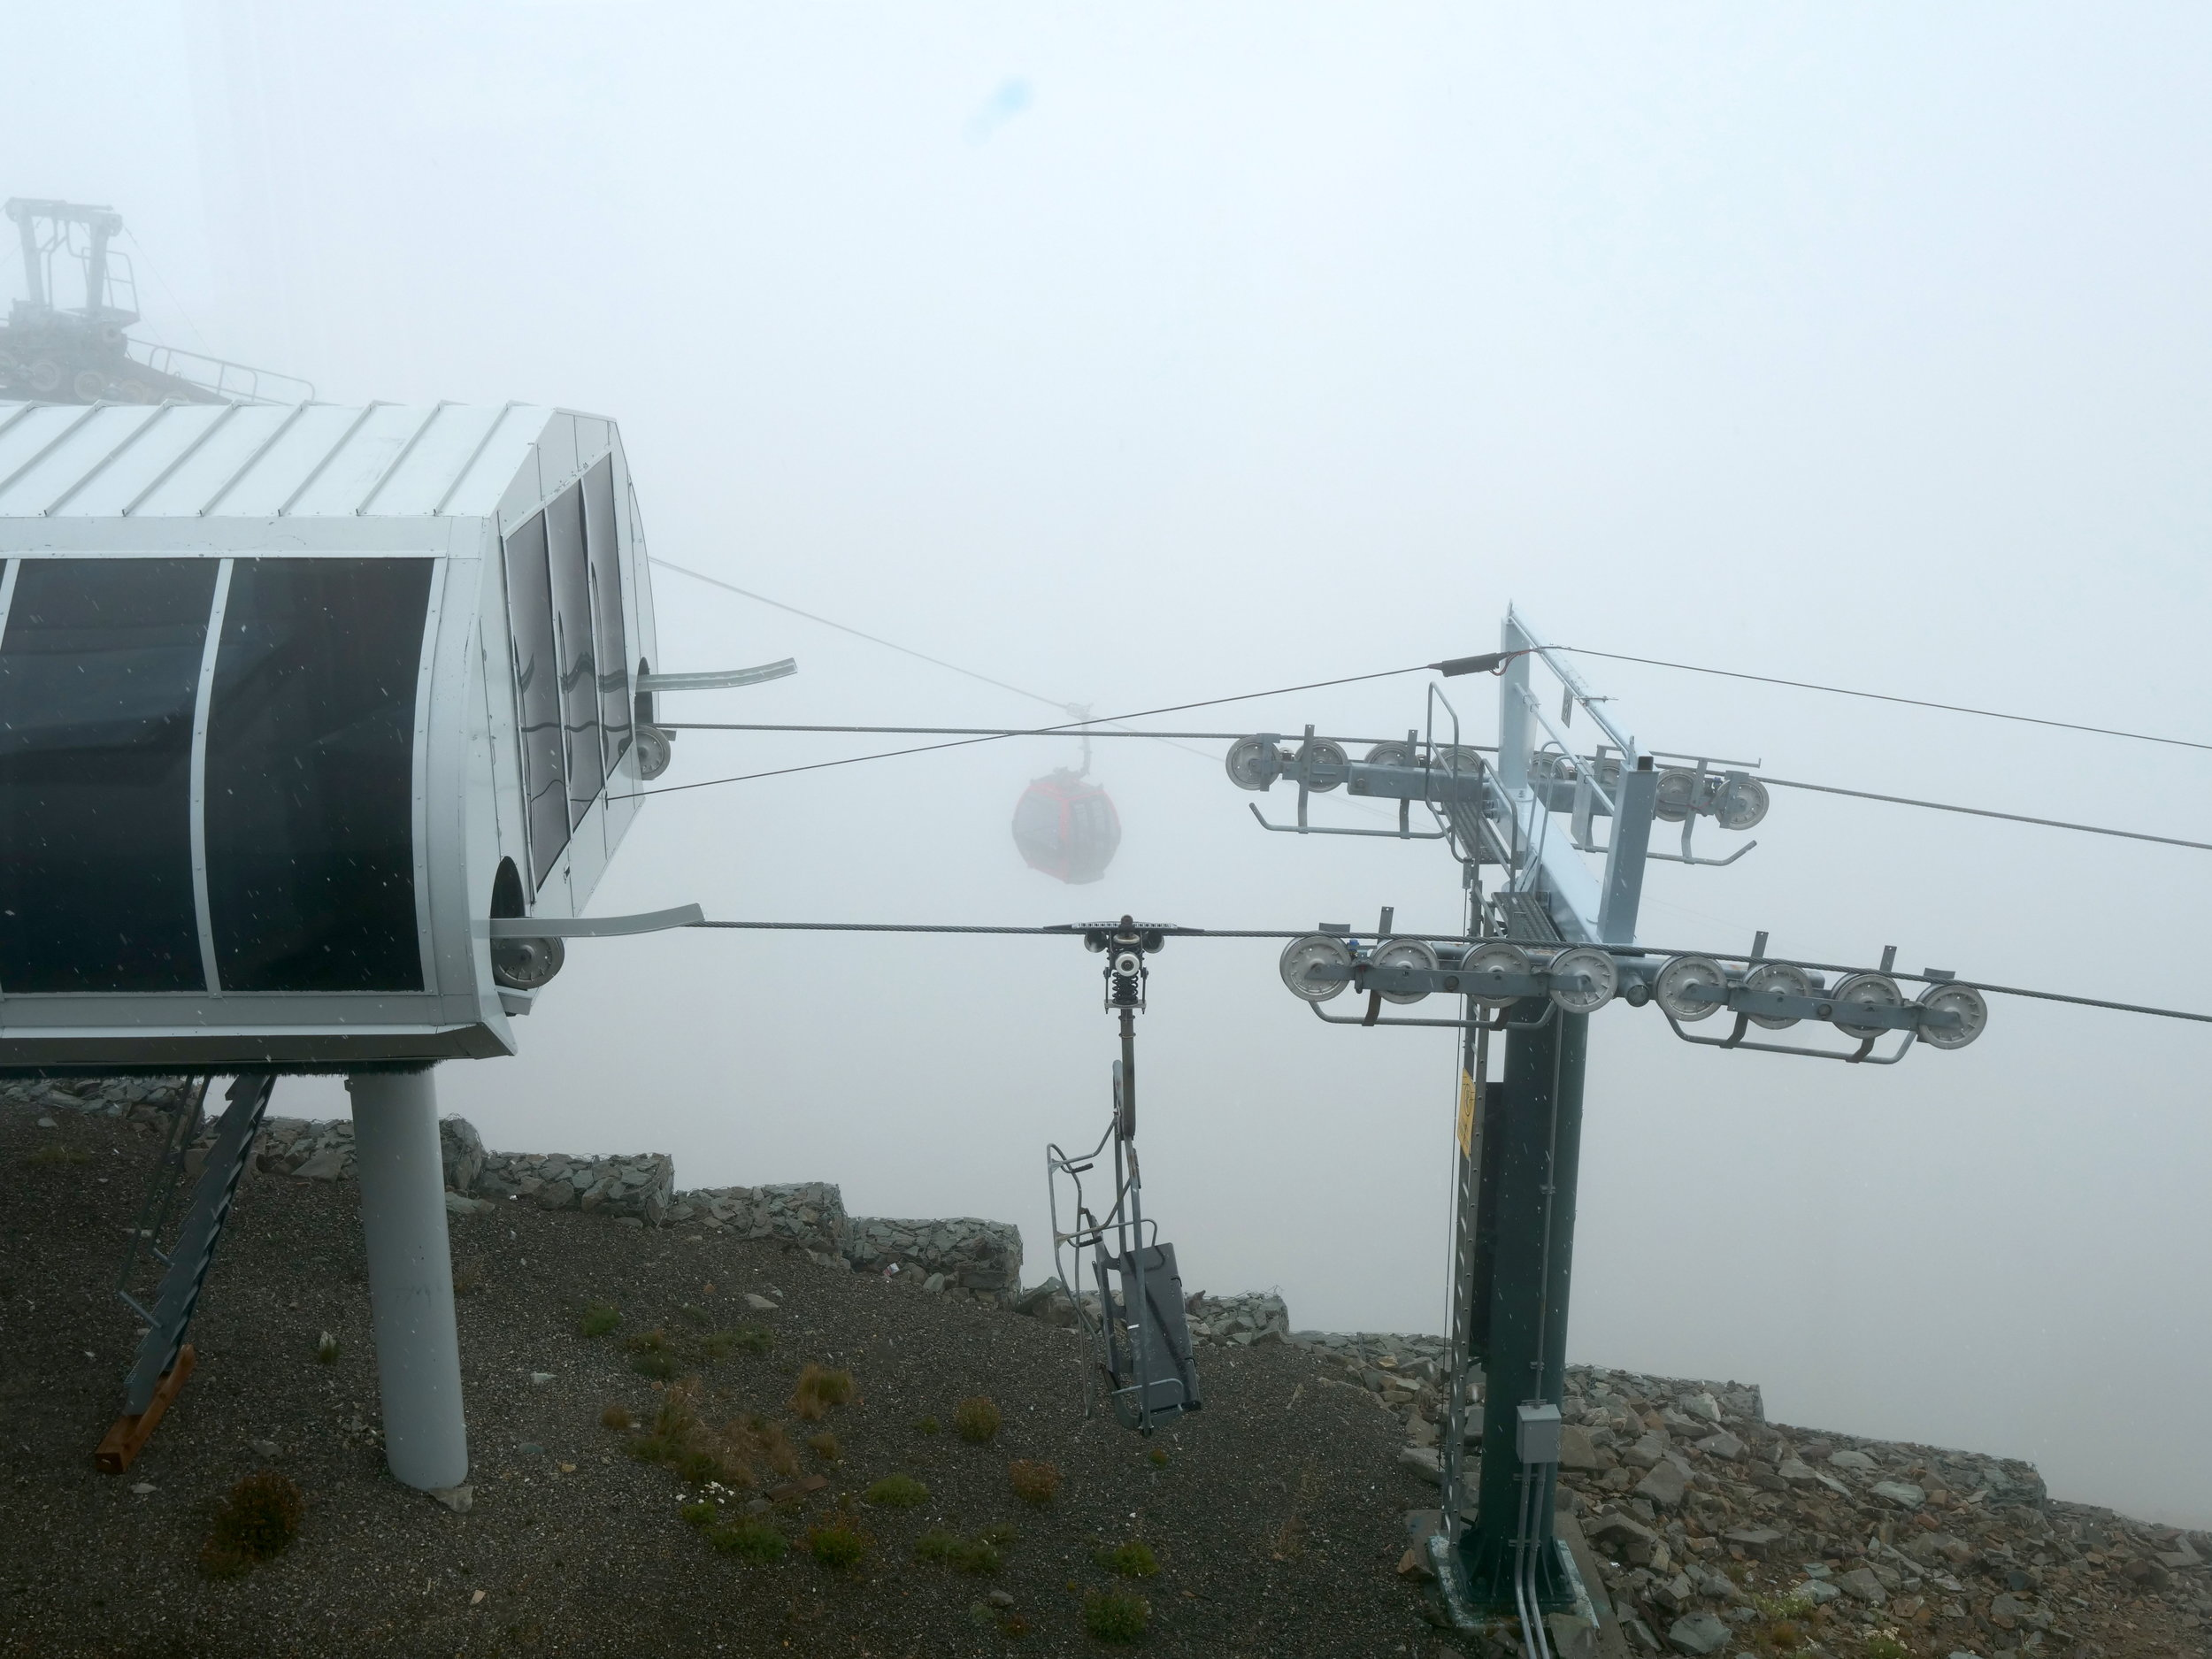 Low visibility and snow at the Summit House, Crystal Mountain (6900')